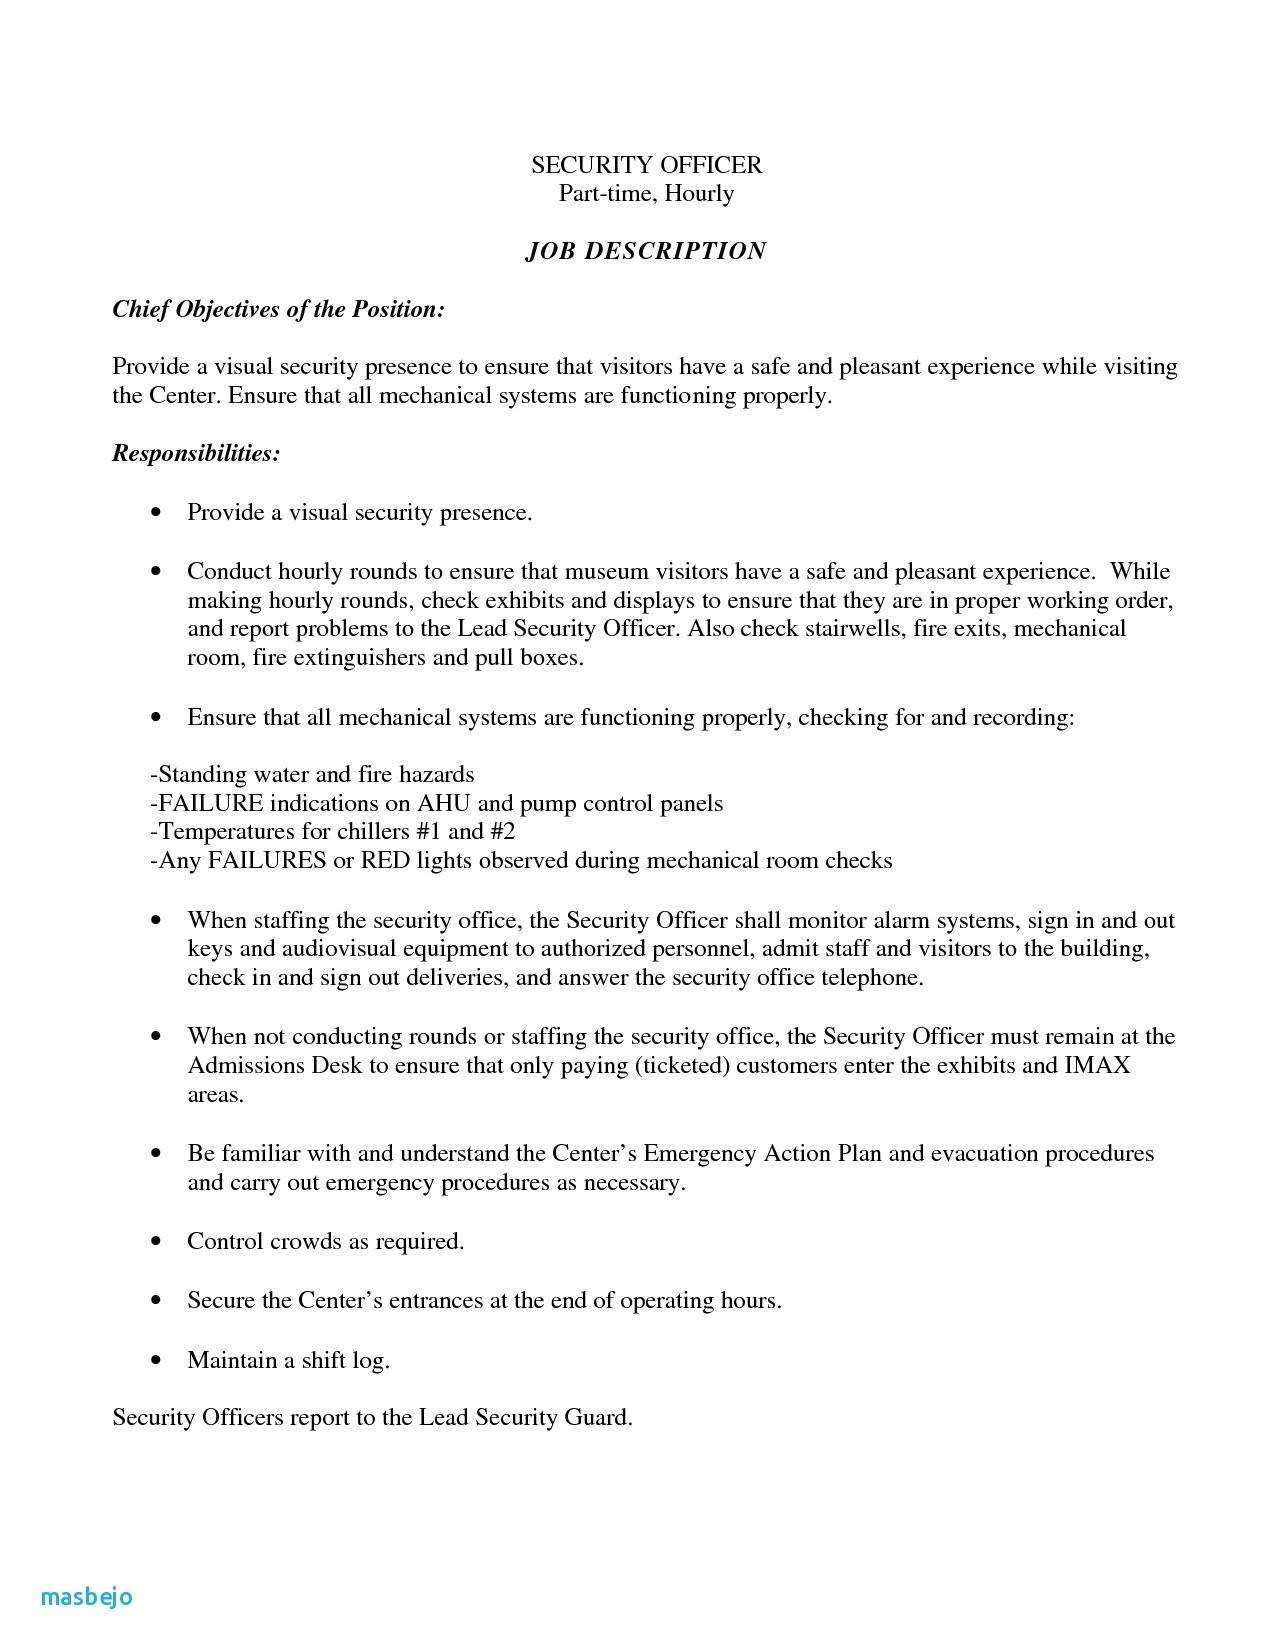 20 Airline Business Plan Template Security Ficer Resume